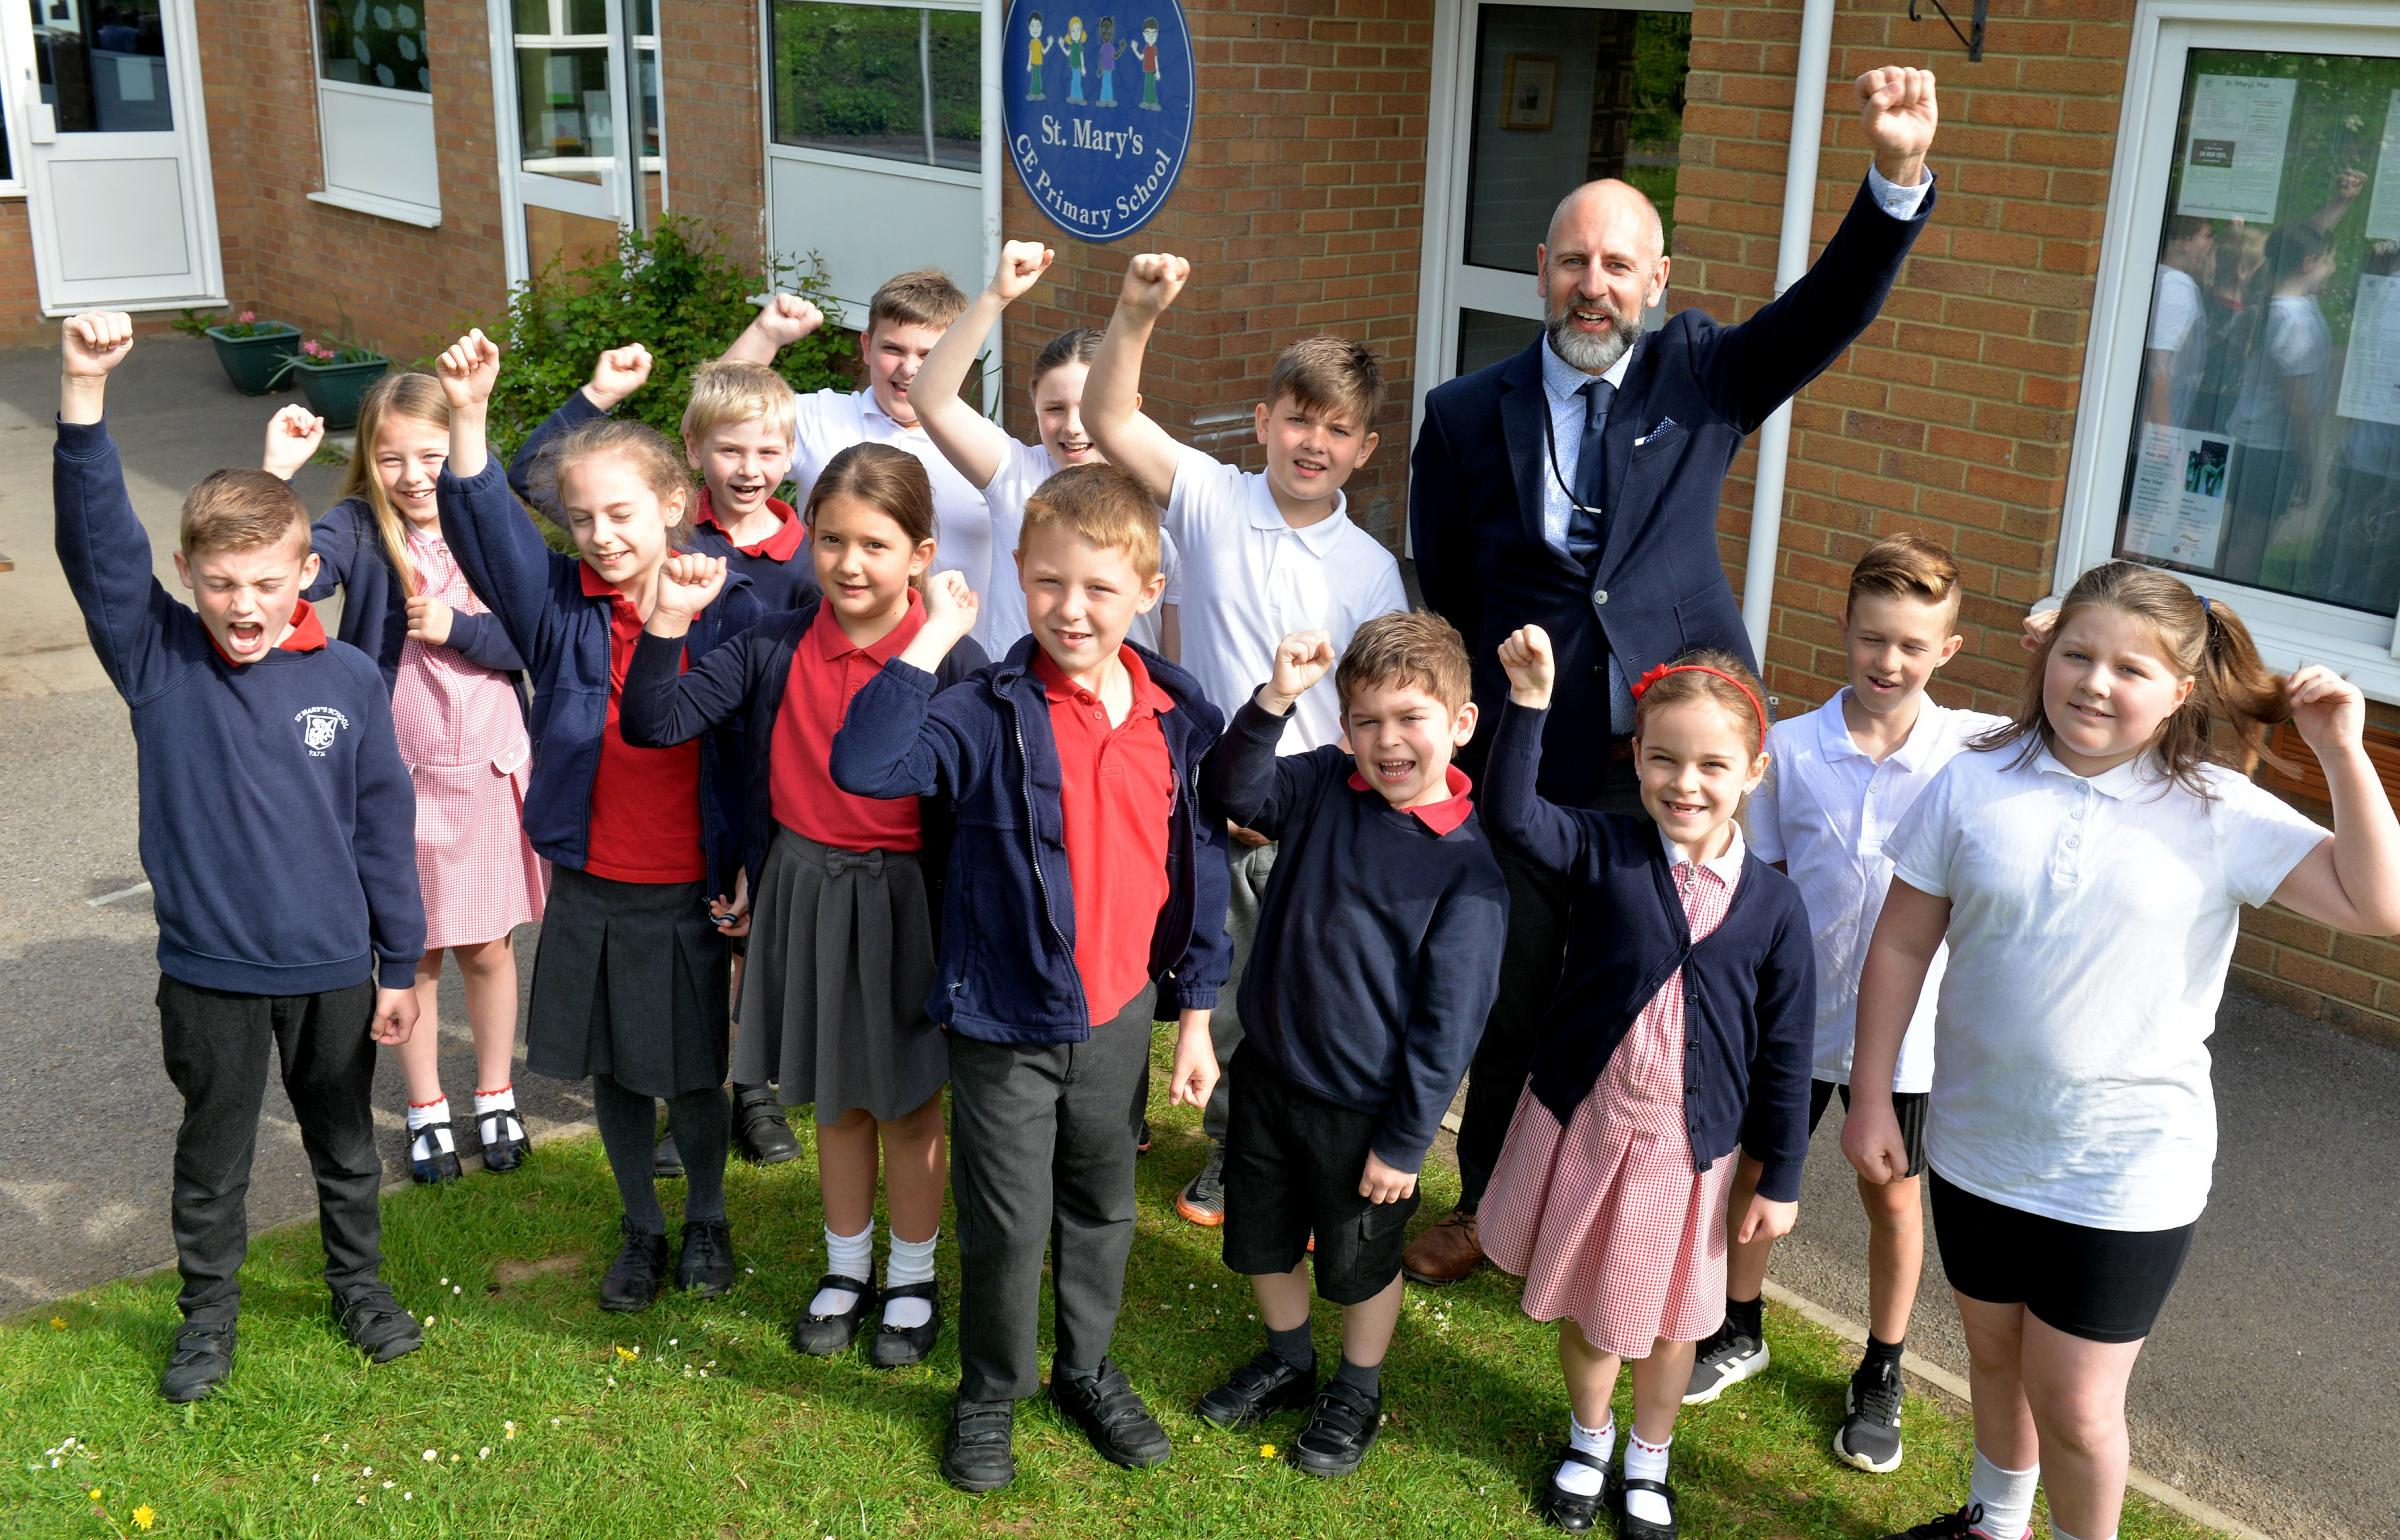 Head teacher at St Mary's Primary School in Yate, John Bird with members of the school's council celebrating their recent Ofsted report